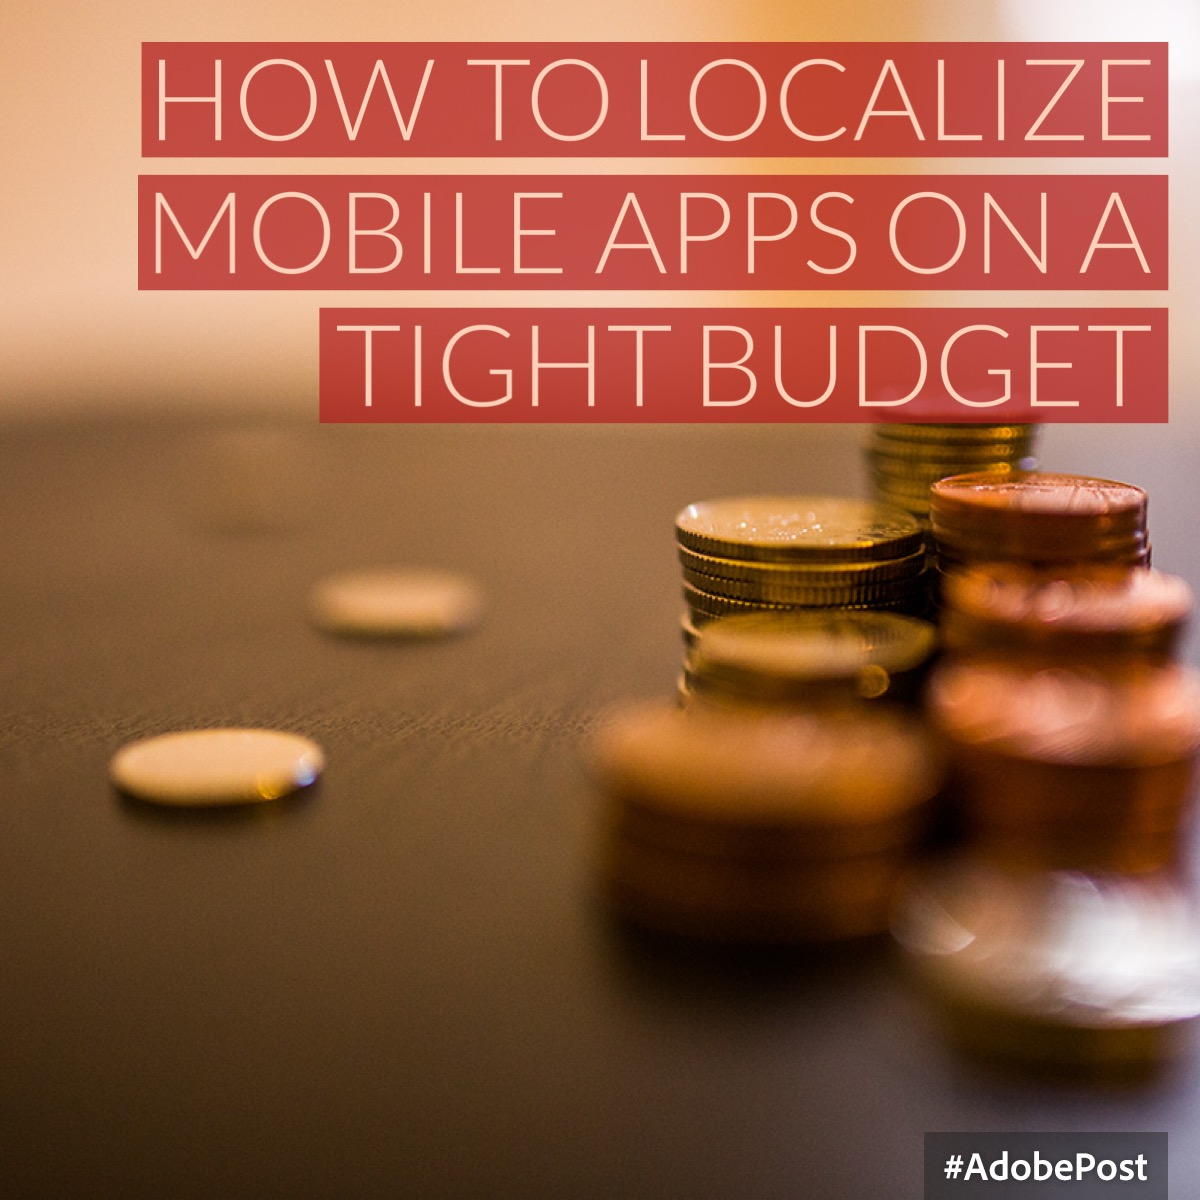 how-to-localize-mobile-apps-on-a-tight-budget